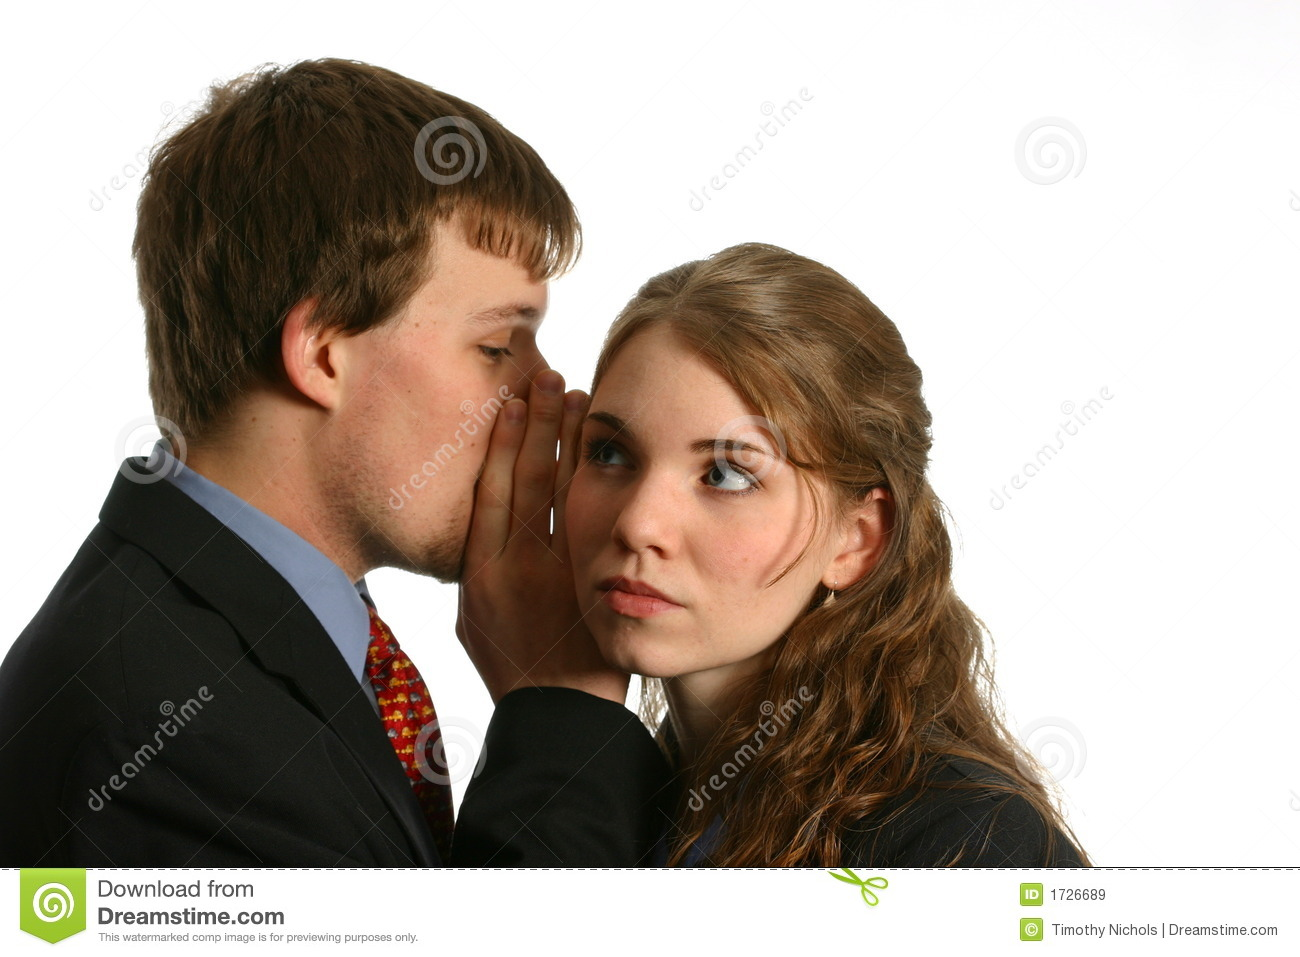 flirting moves that work on women photos free photos images